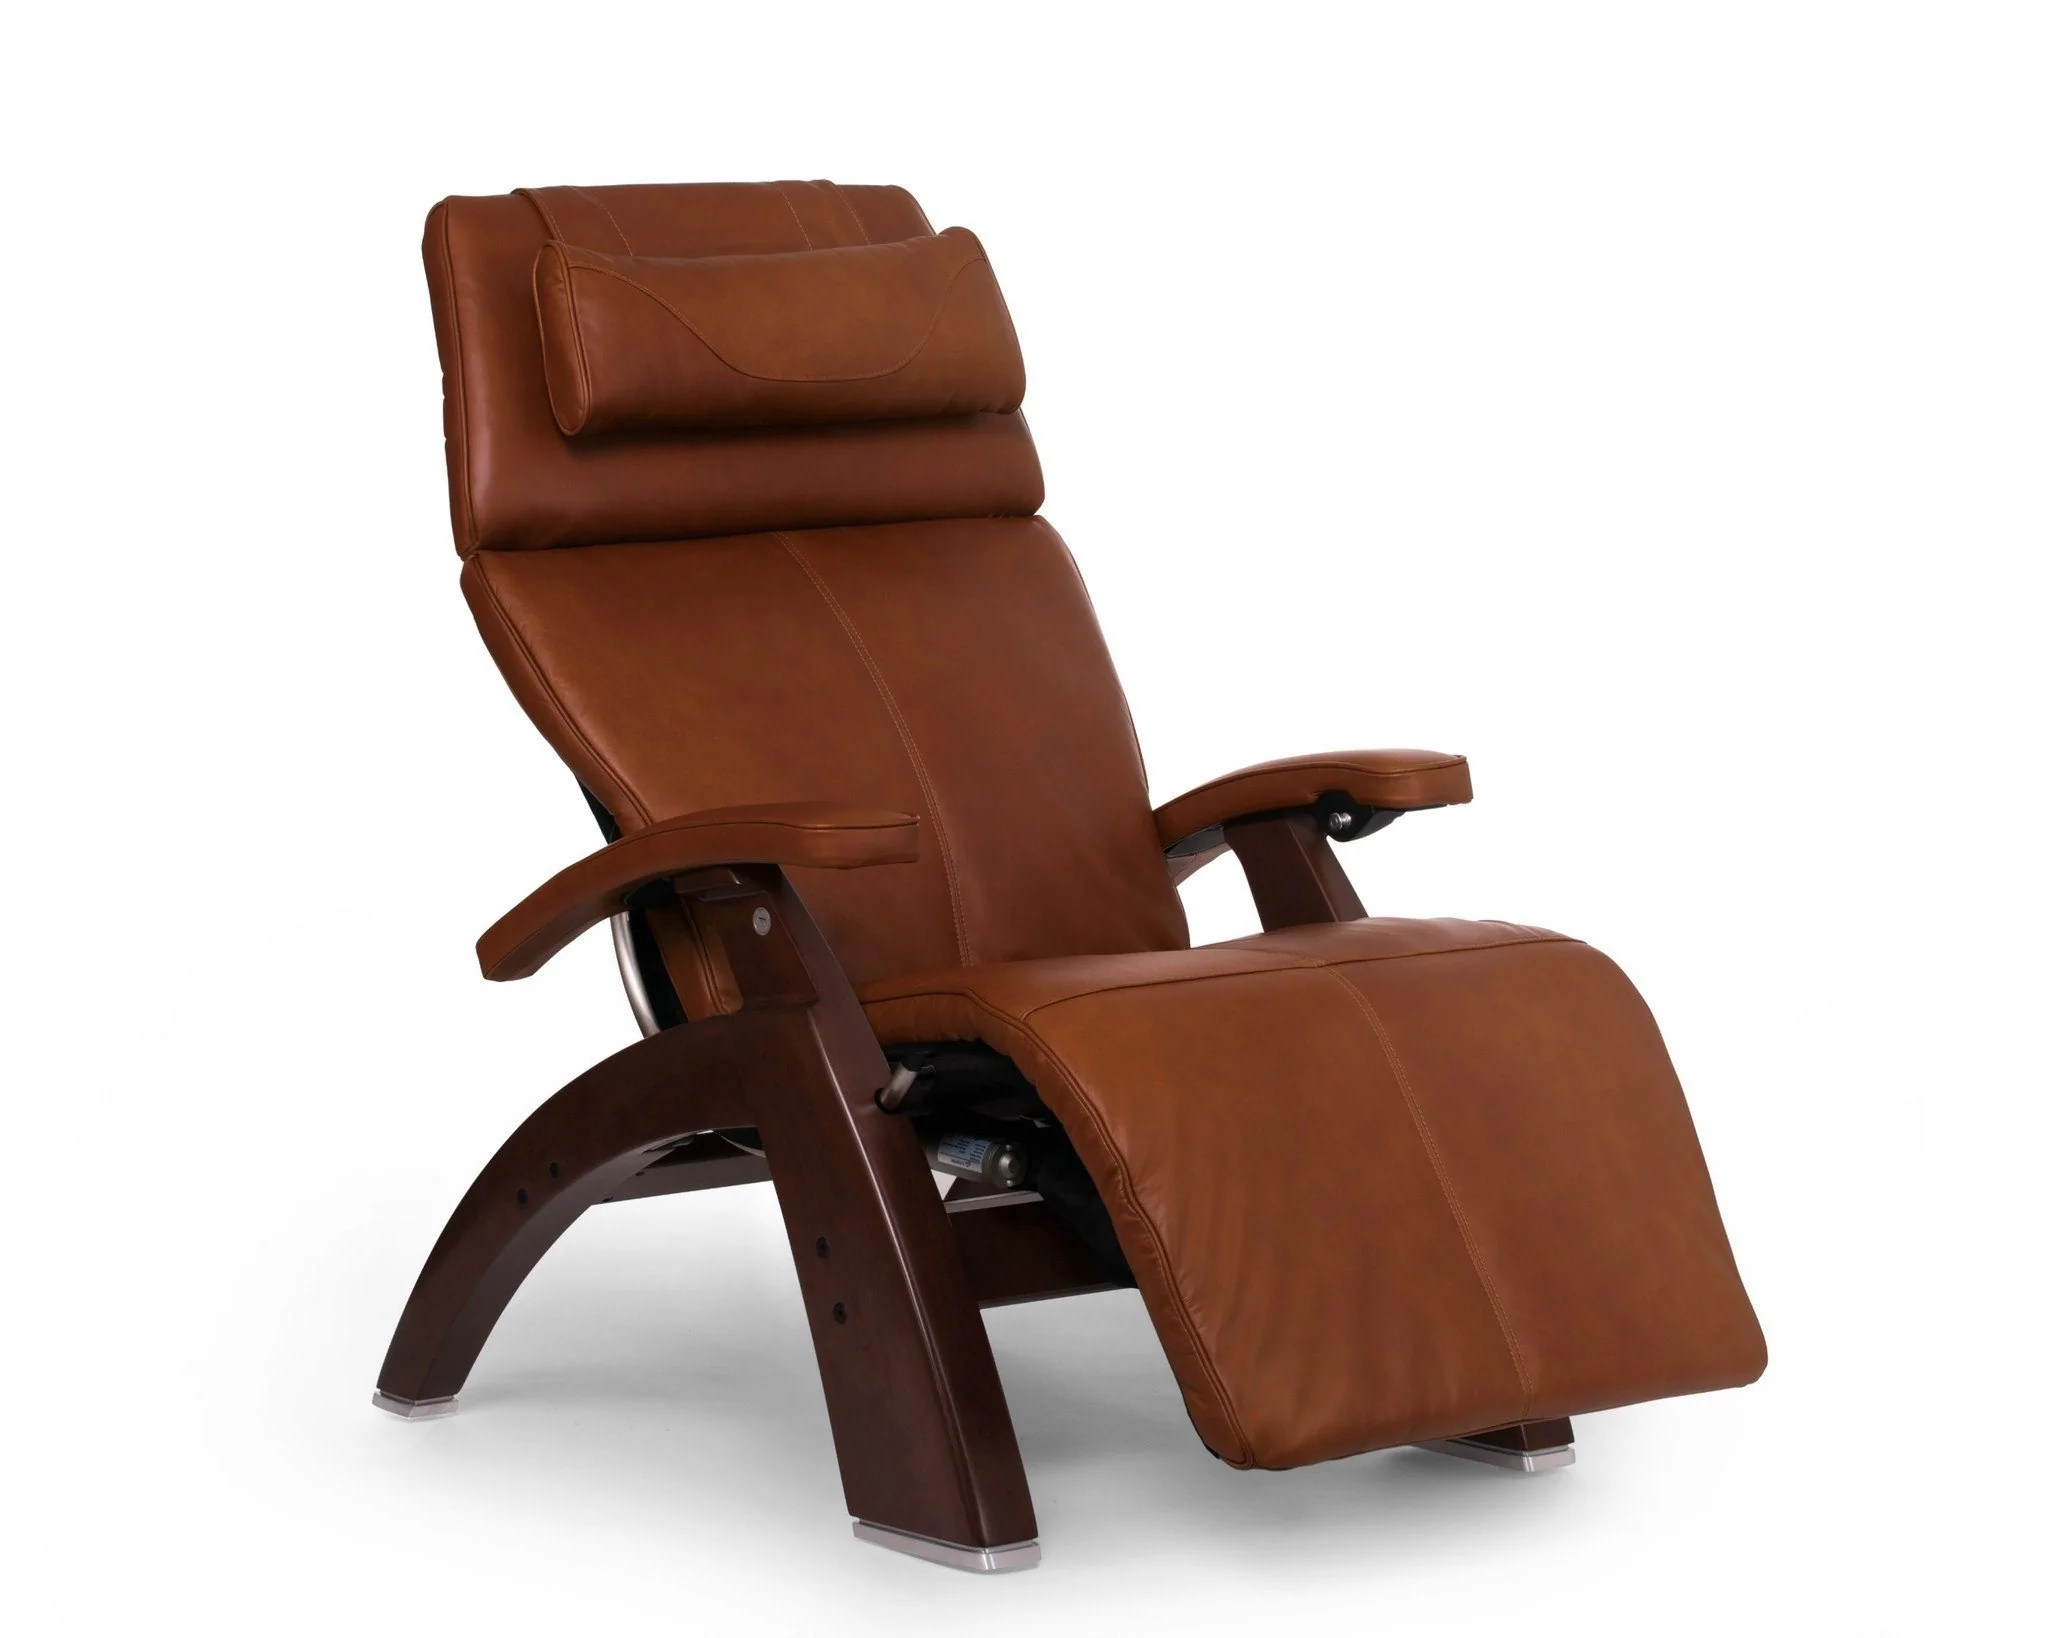 Zero Gravity Lift Chair Perfect Chair Pc 600 Omni Motion Silhouette Zero Gravity